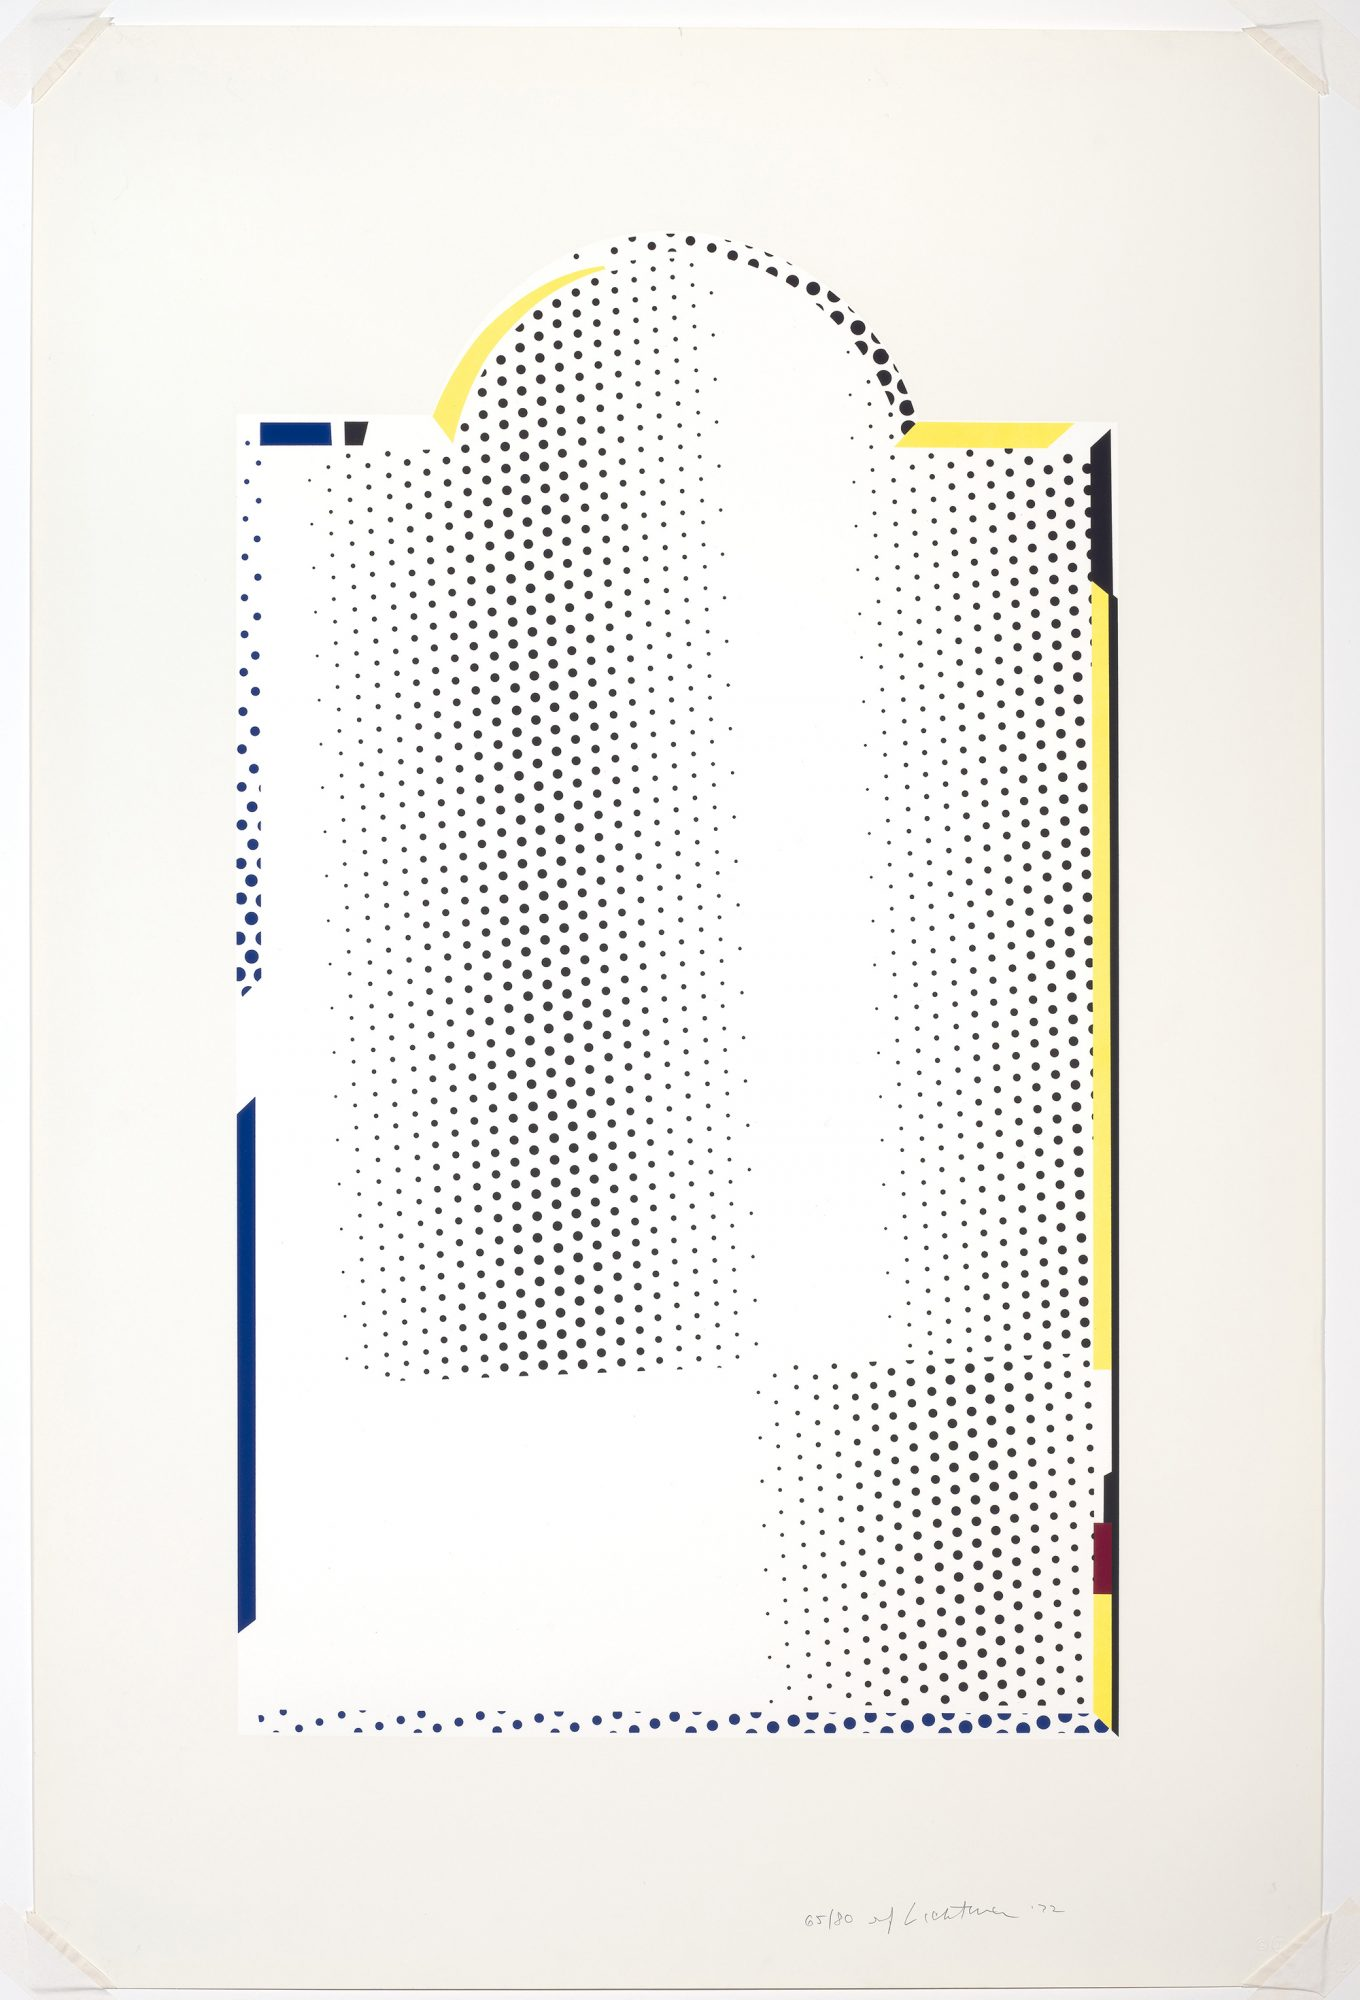 Roy Lichtenstein, Mirror #7, 1972. Color lithograph and silkscreen, 29 1/8 x 17 5/16 in. Gift of Frederick M. Myers, Class of 1943. 81.46.34